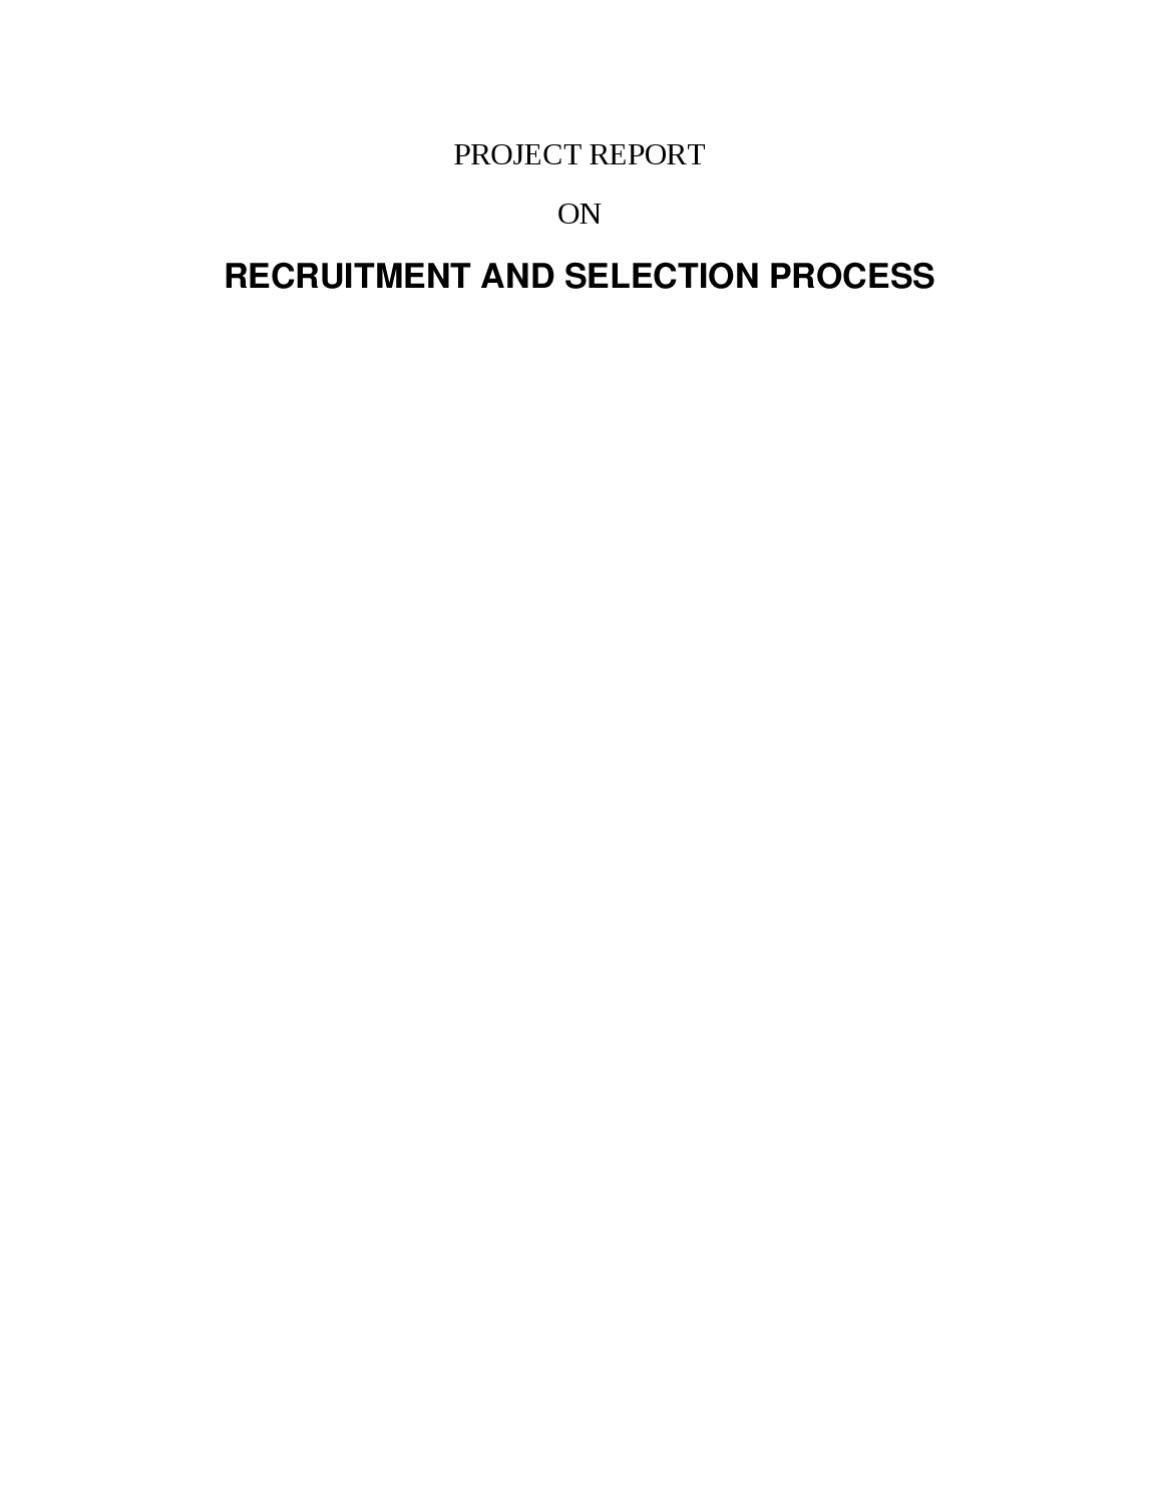 PROJECT REPORT RECRUITMENT AND SELECTION PROCESS by Sanjay